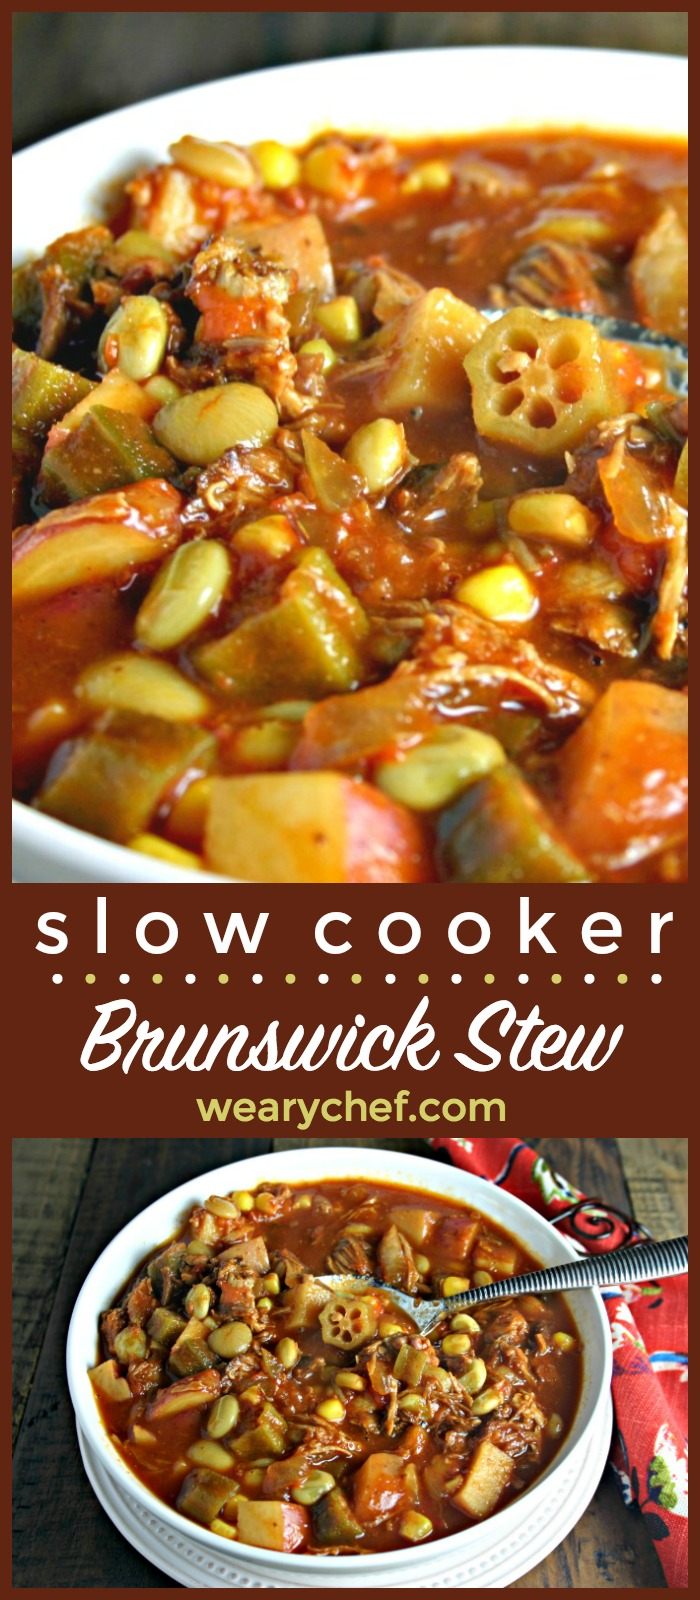 Easy Brunswick Stew In The Slow Cooker The Weary Chef